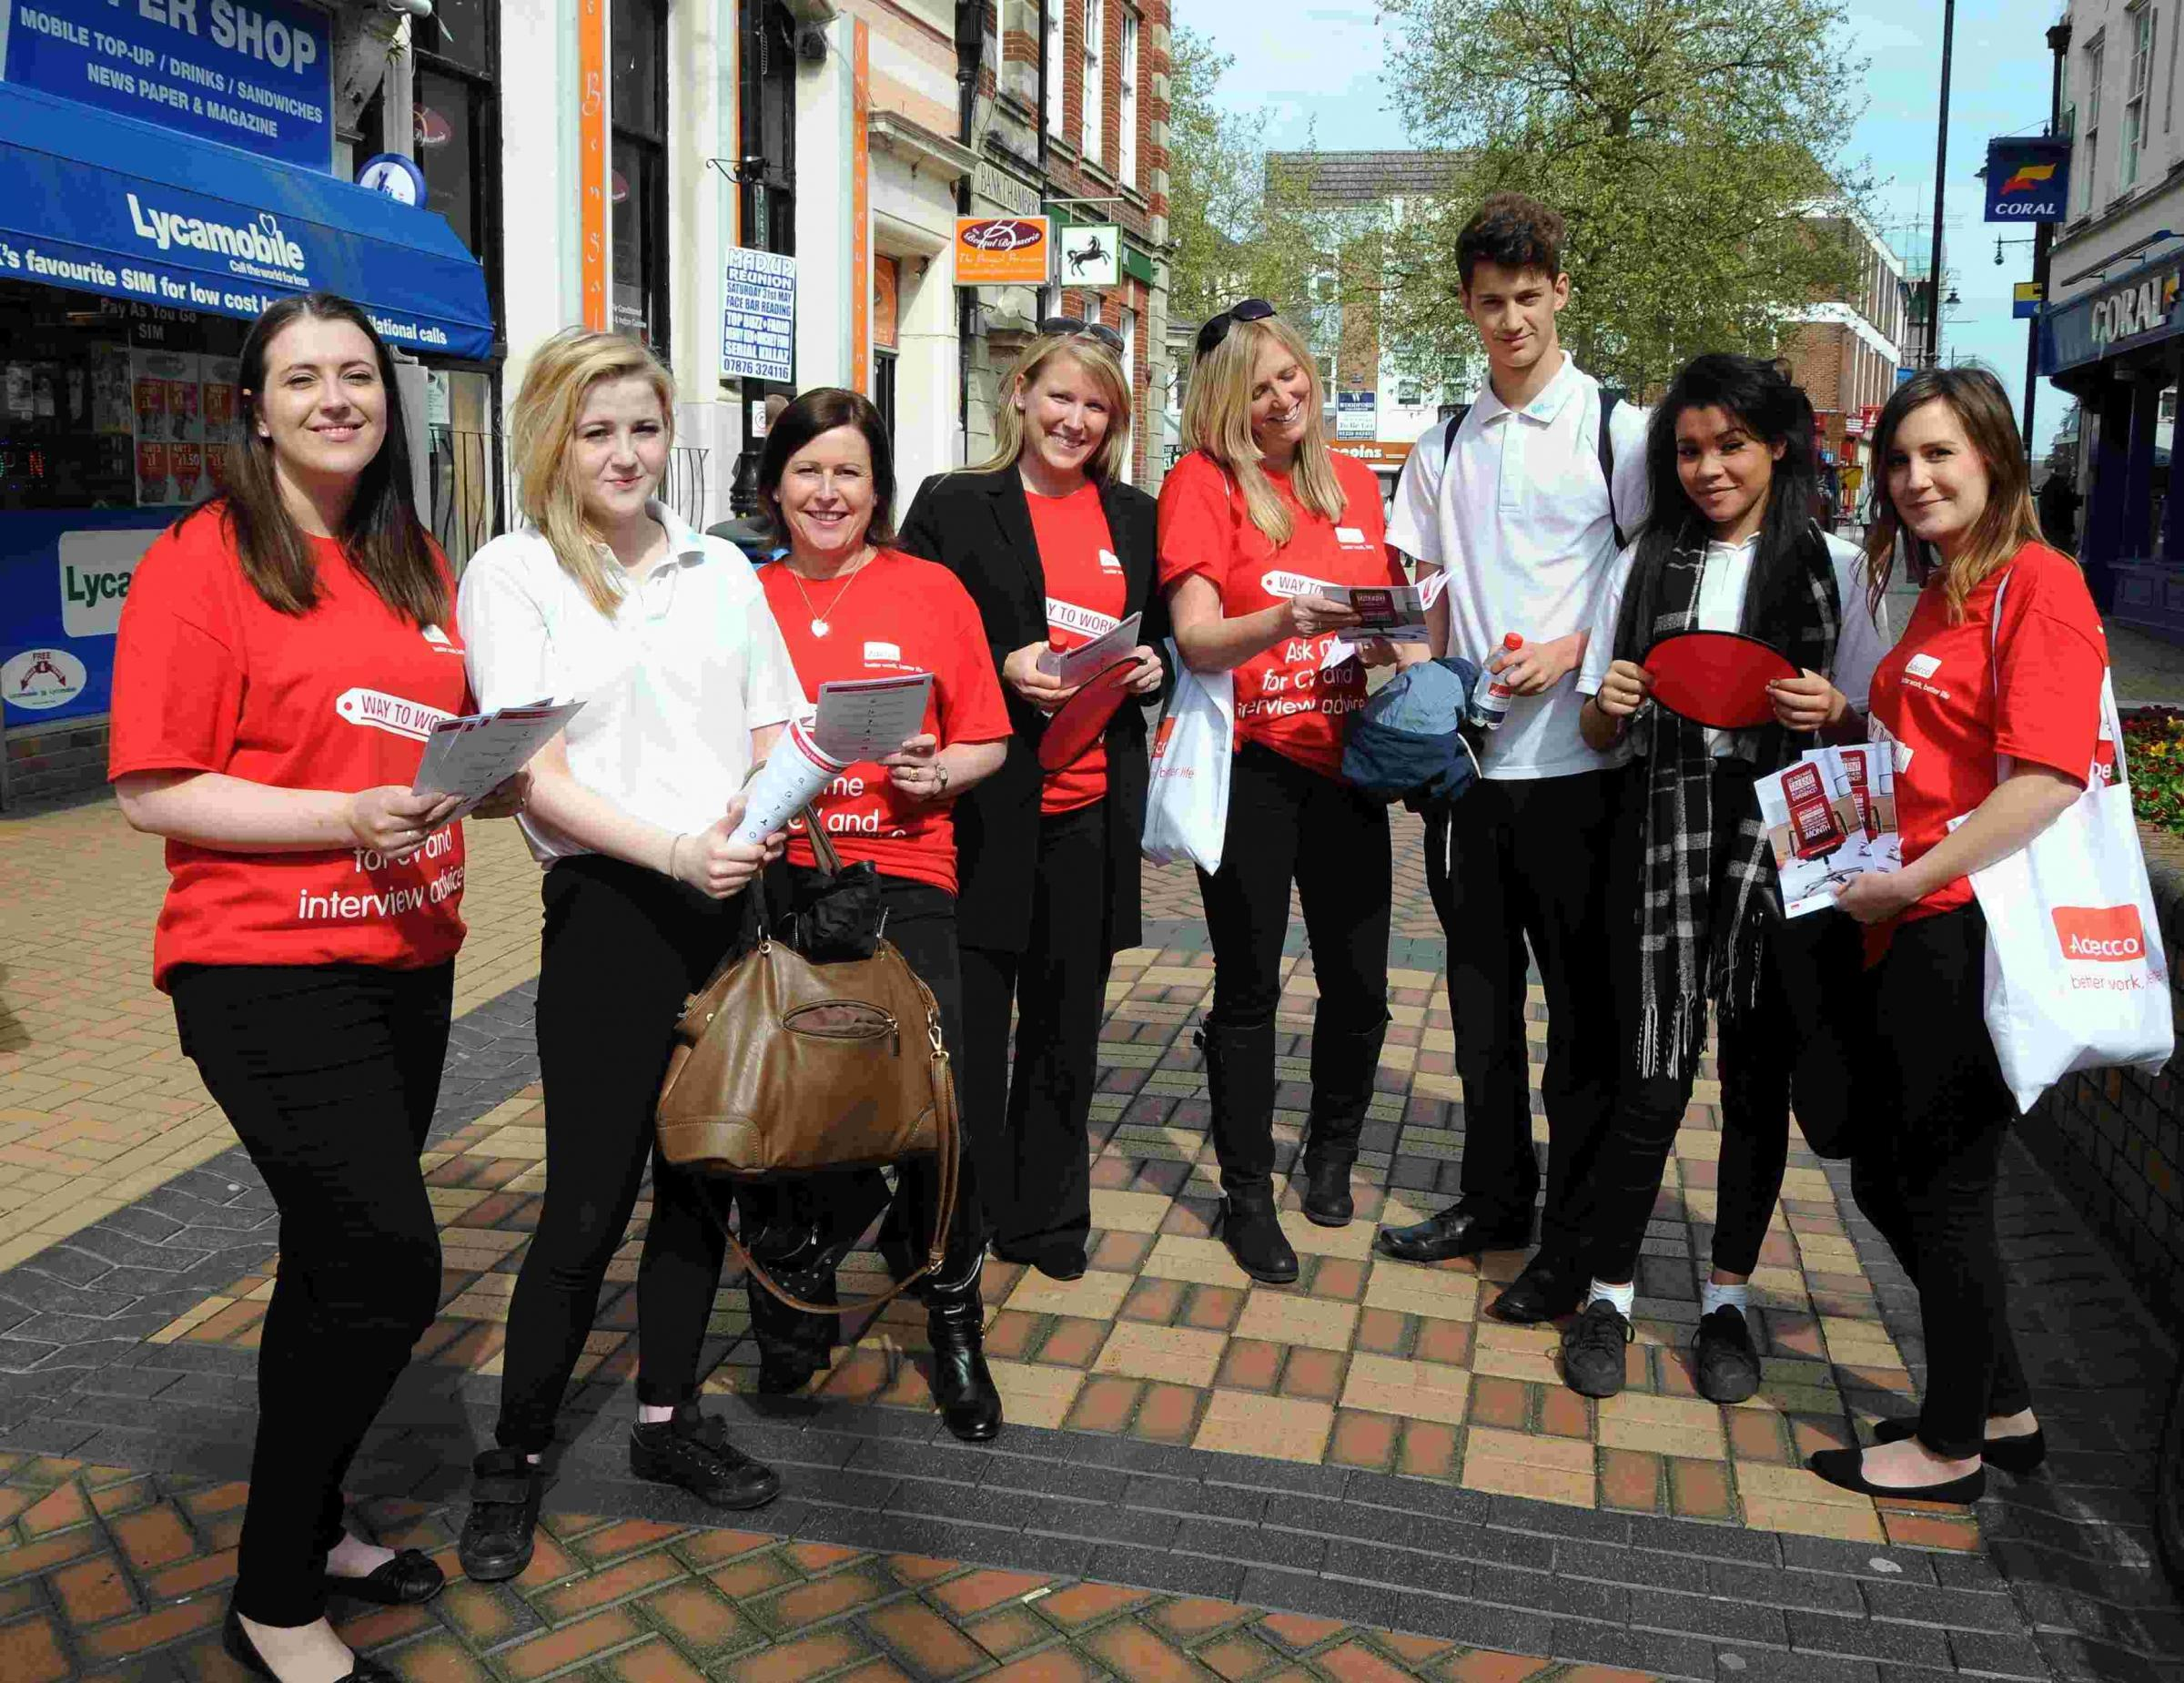 Staff from Adecco talk to students from Cranbourne Business and Enterprise College, in Winchester Street, Basingstoke